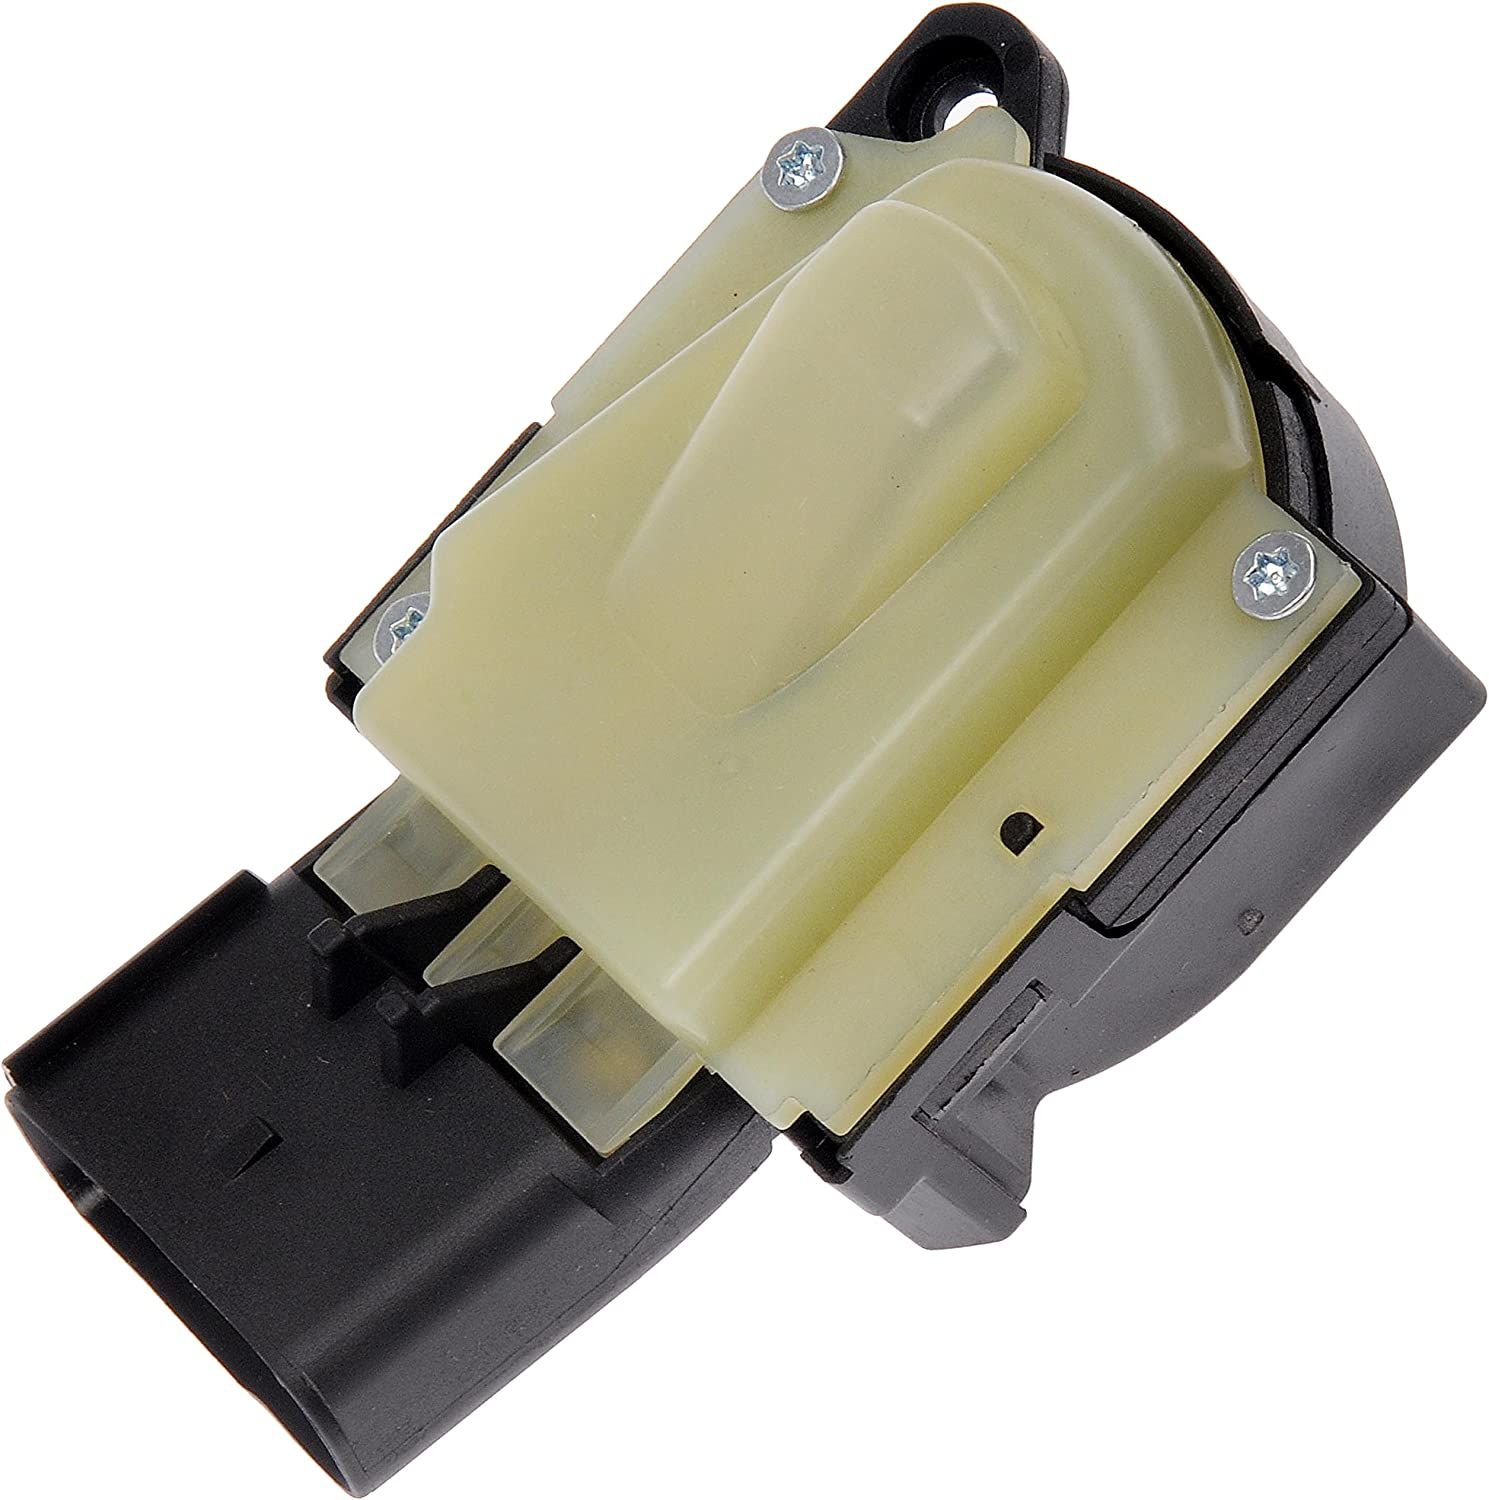 Selling Dorman 924-727 Ignition Switch for Dodge Jeep Chrysler Select Max 41% OFF Mo